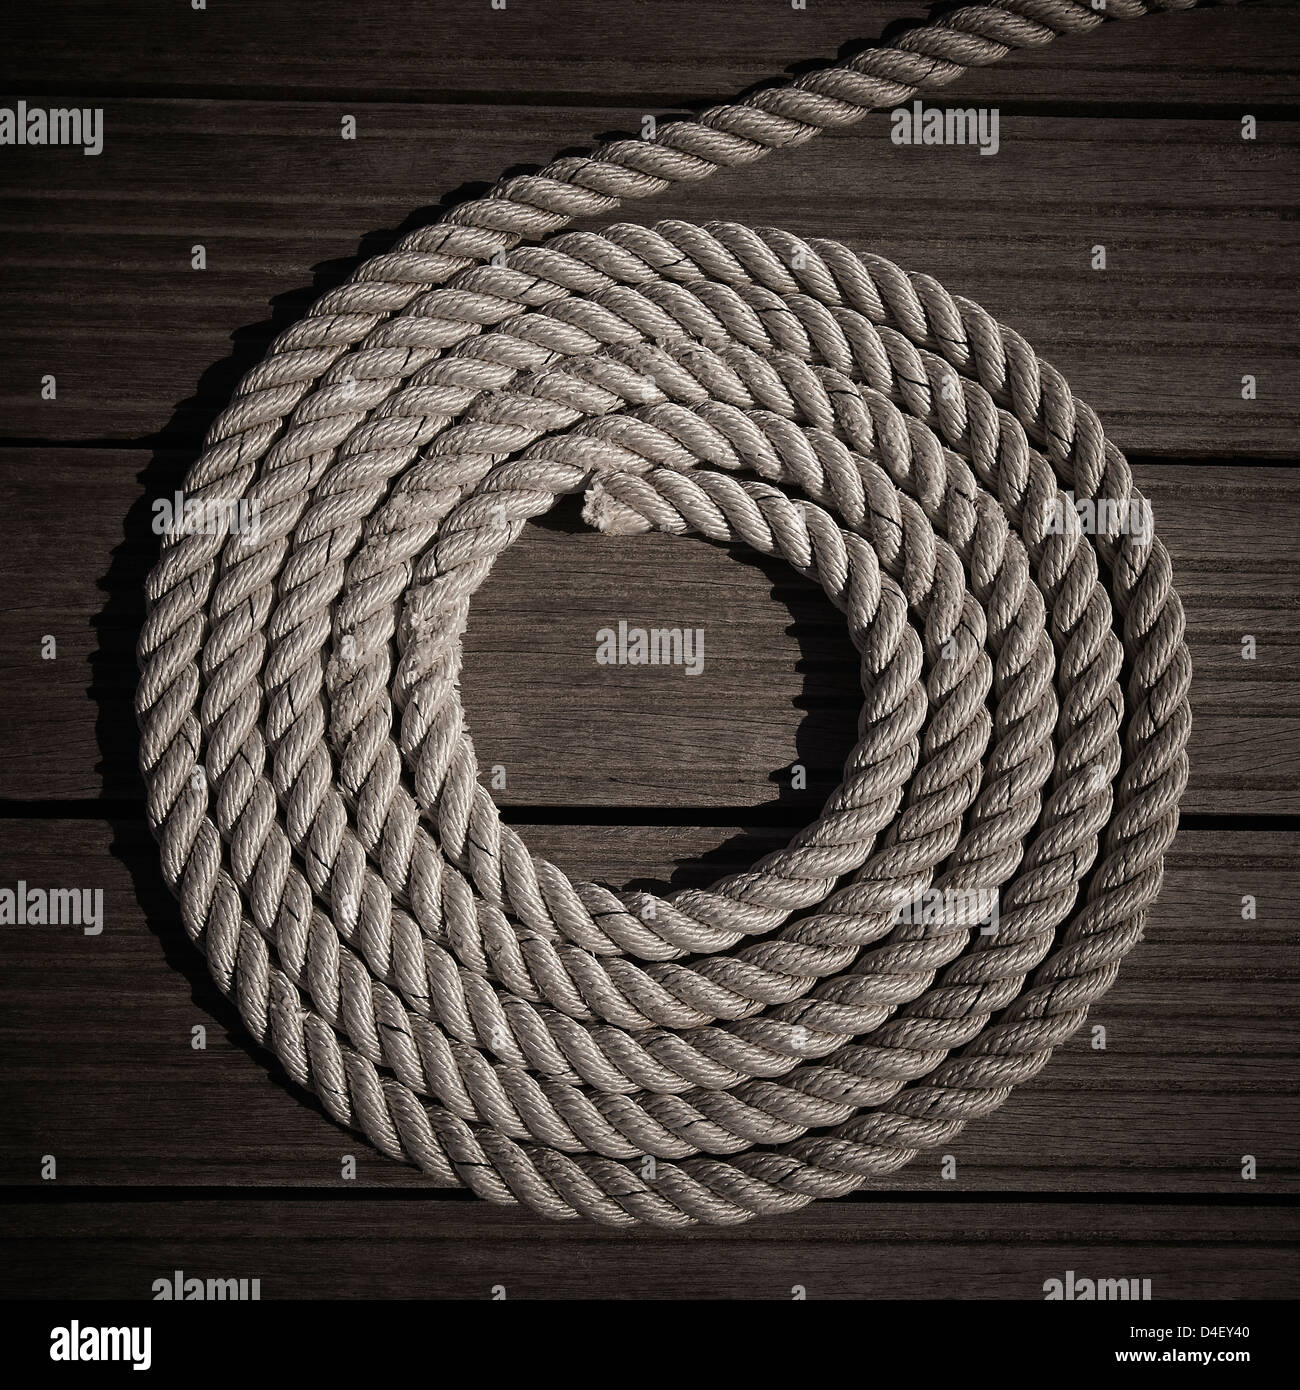 Rope coiled into circle on boardwalk - Stock Image